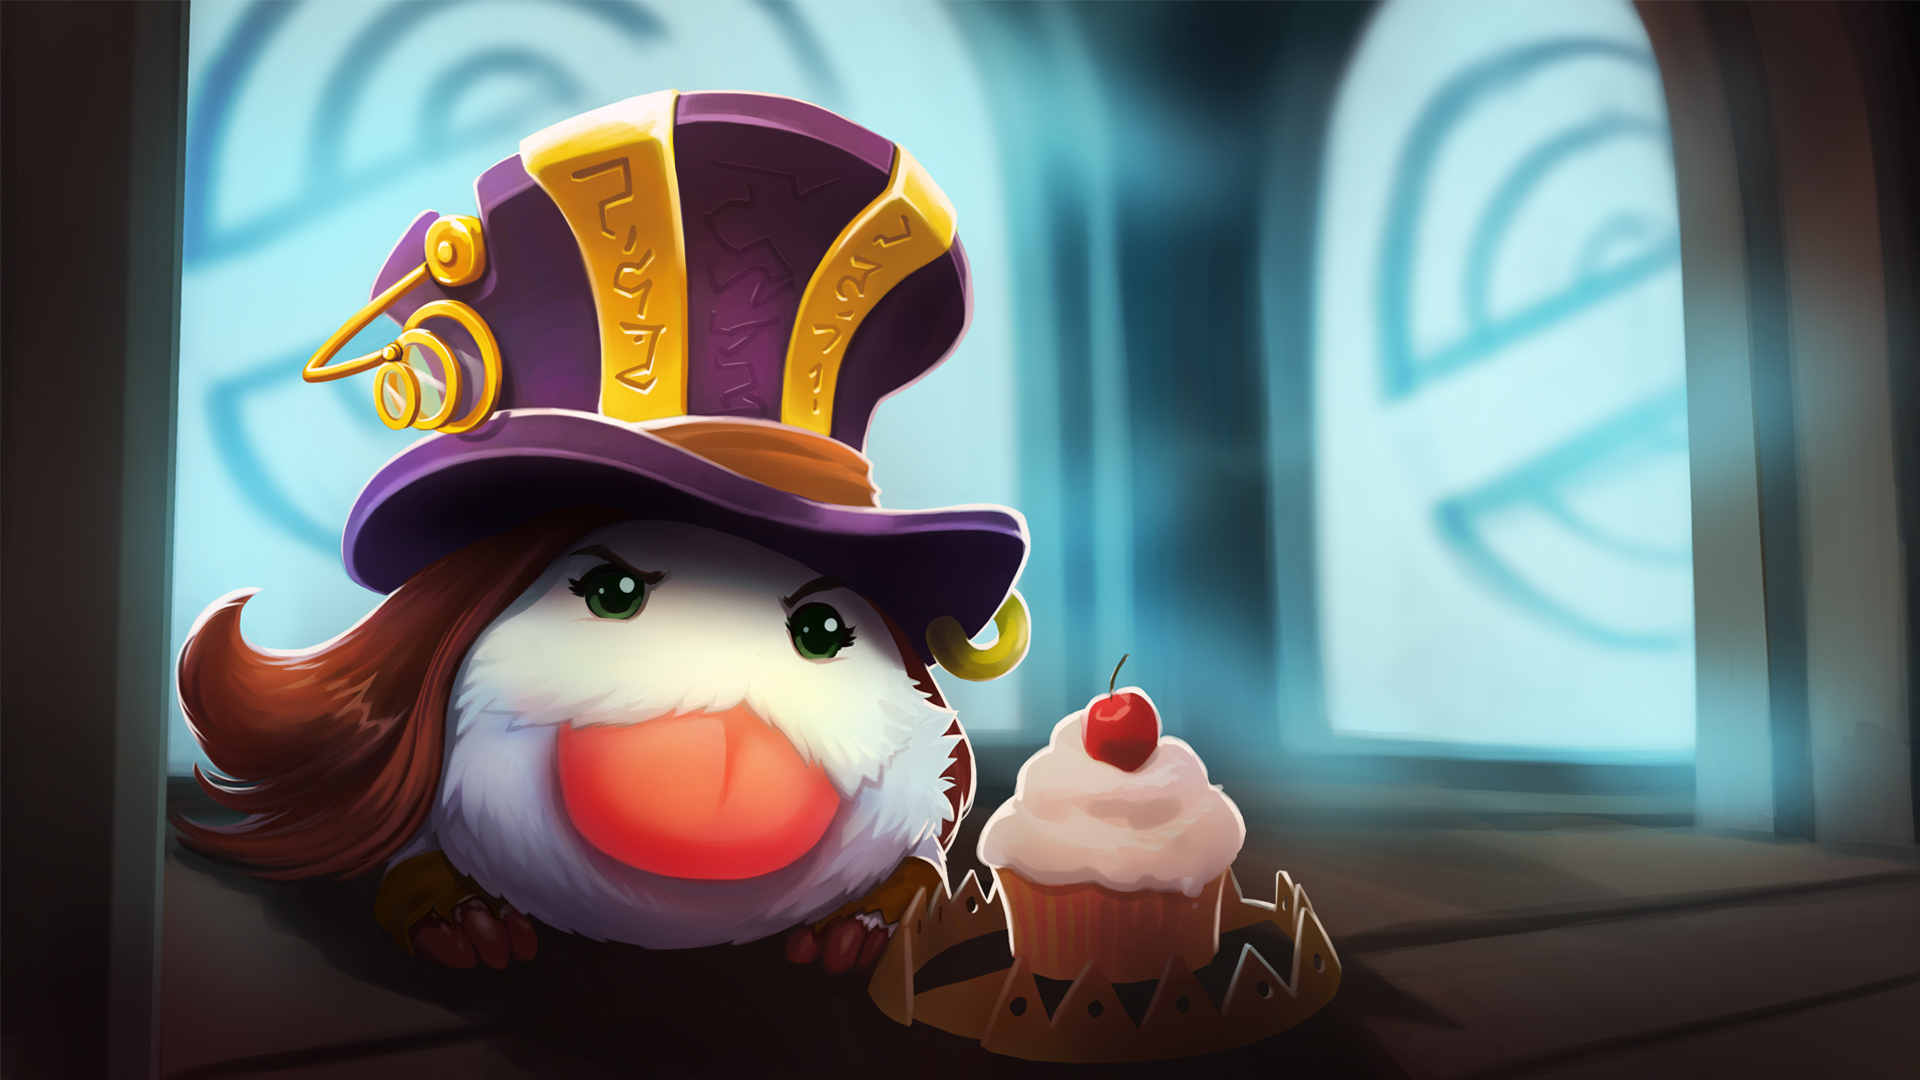 Draven And Girls Wallpaper Caitlyn Poro Wallpapers Hd League Of Legends Wallpapers